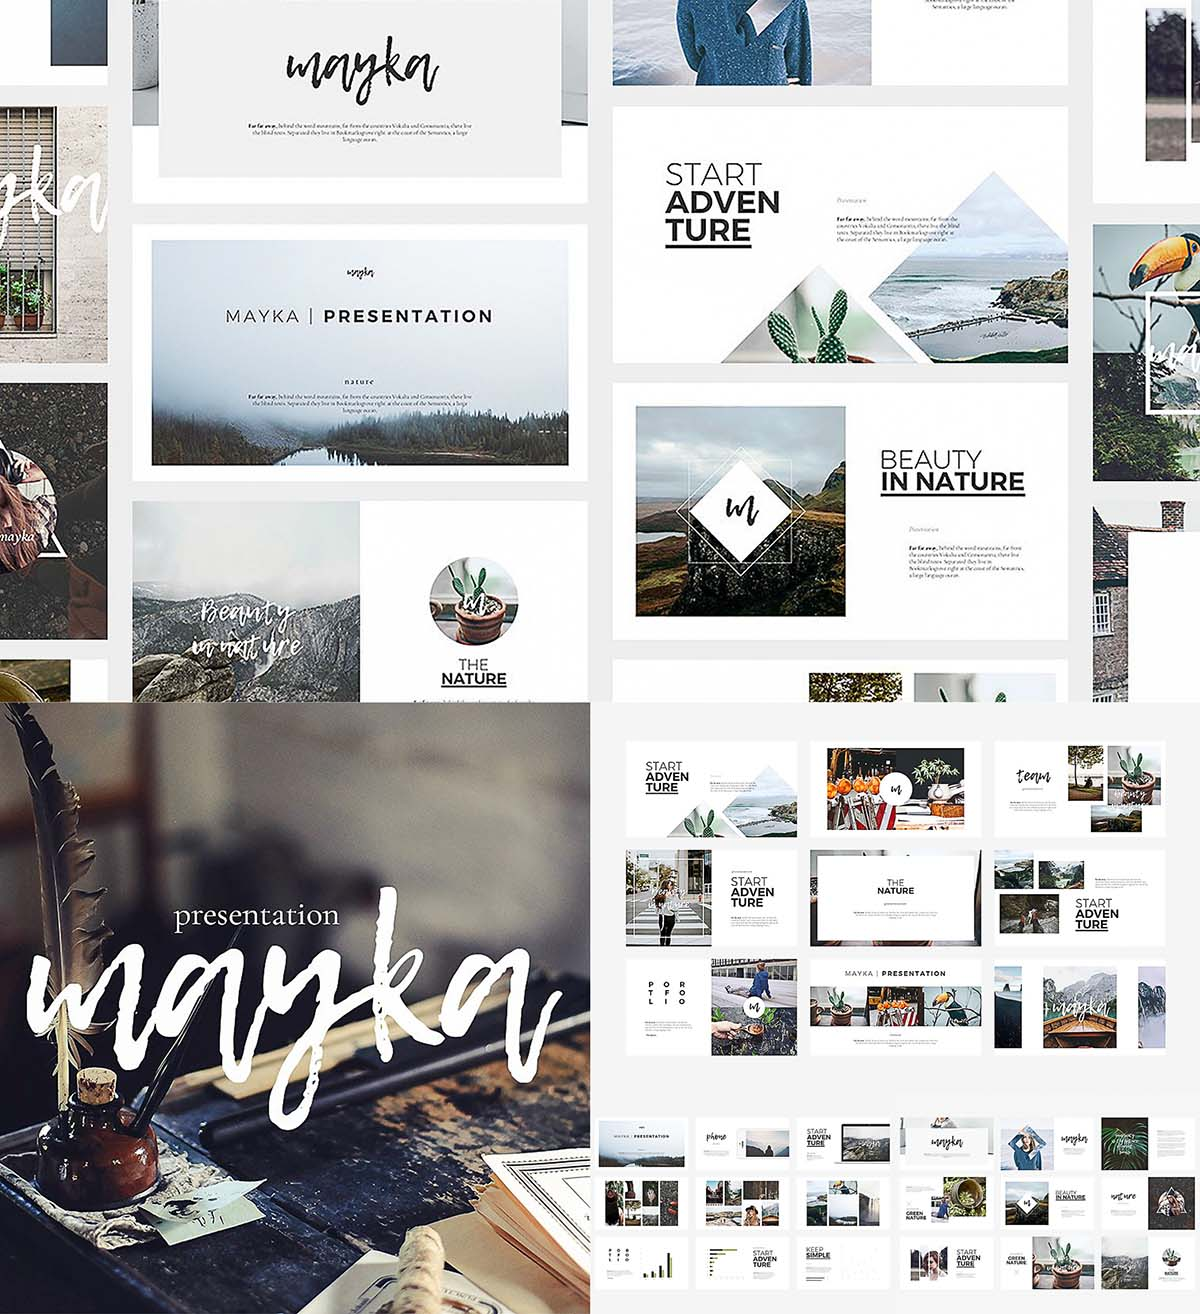 Mayka powerpoint template free download mayka powerpoint template toneelgroepblik